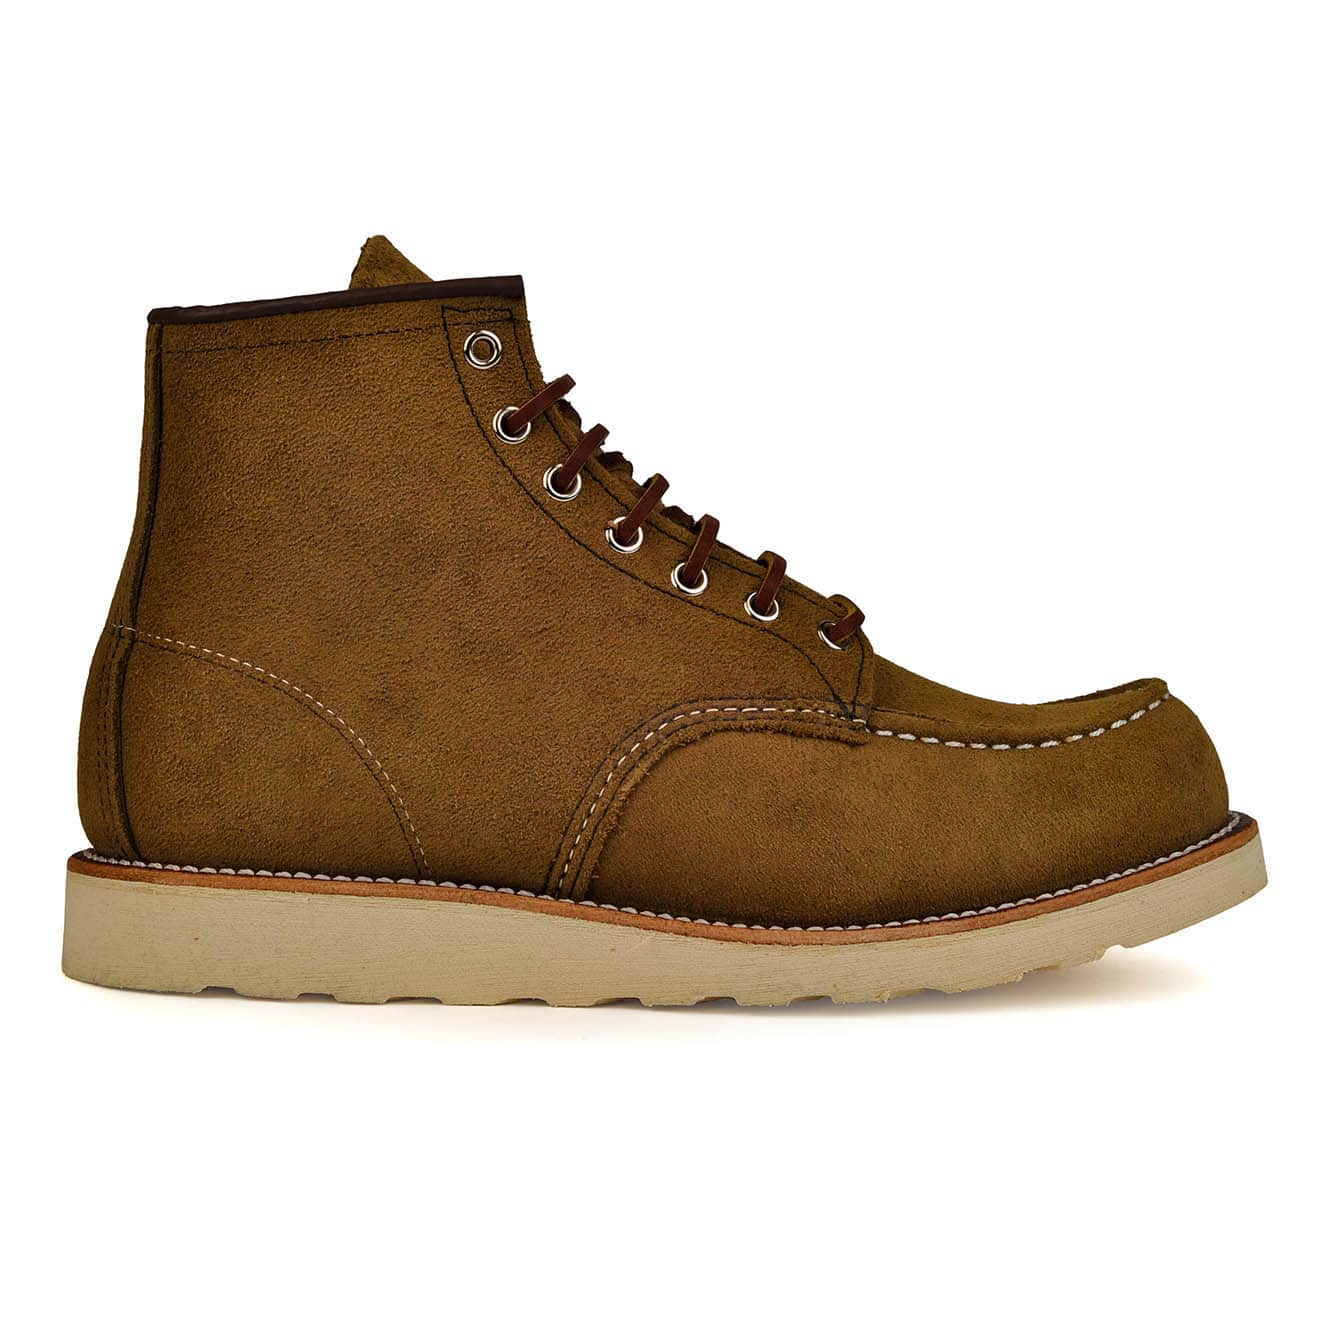 Red Wing 6-inch Classic Moc Boot Olive Mohave Leather